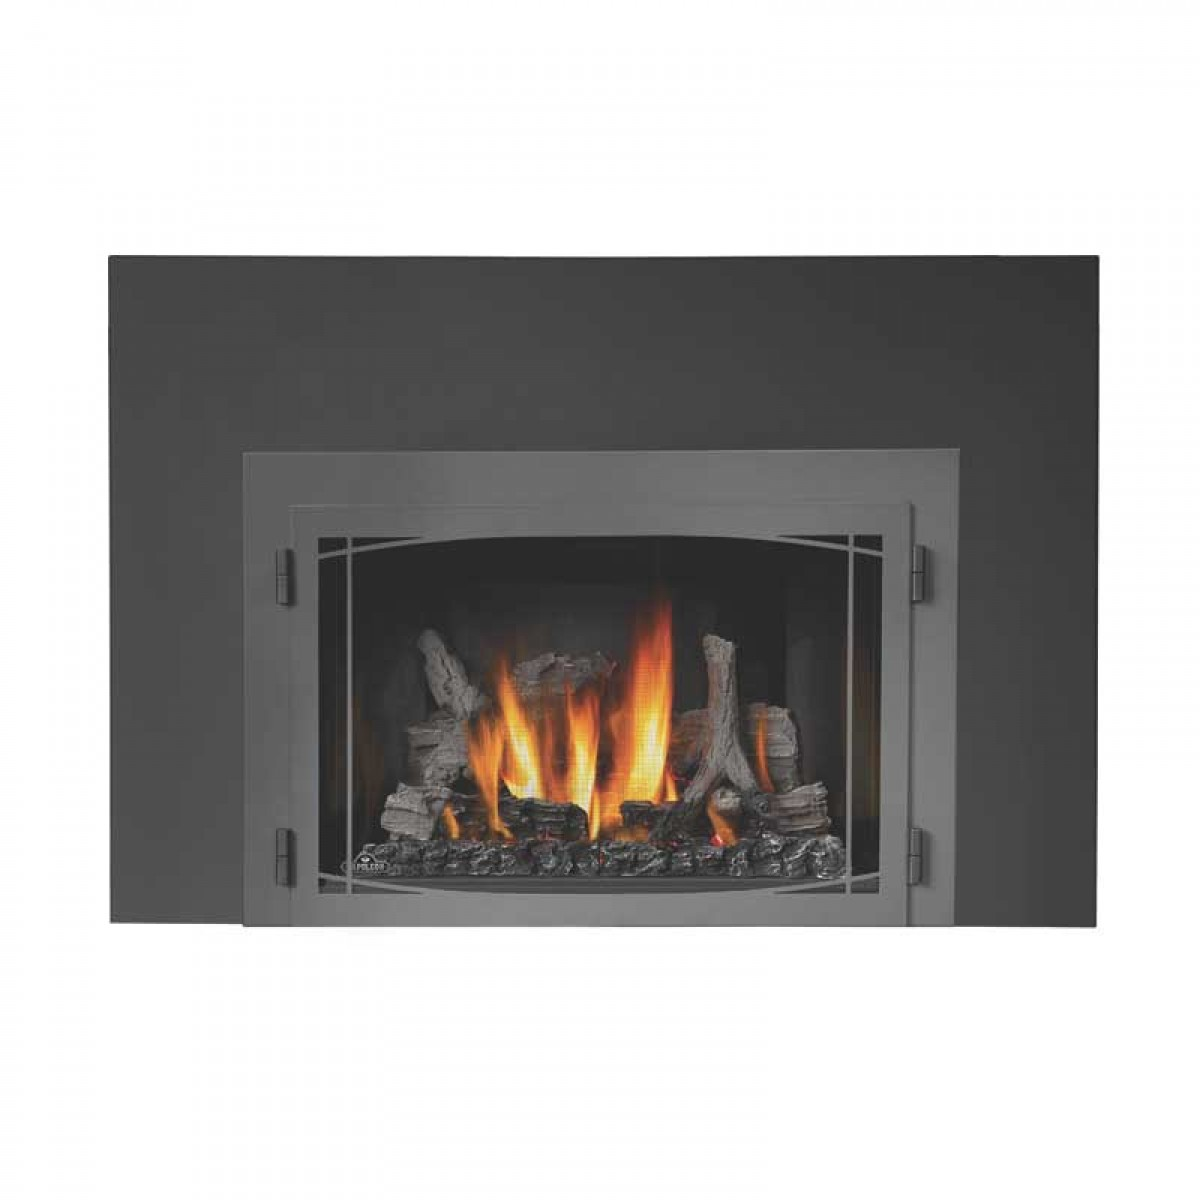 Standard Gas Fireplace Insert Dimensions Napoleon Ir3n 1sb Basic Fireplace Insert At Ibuyfireplaces